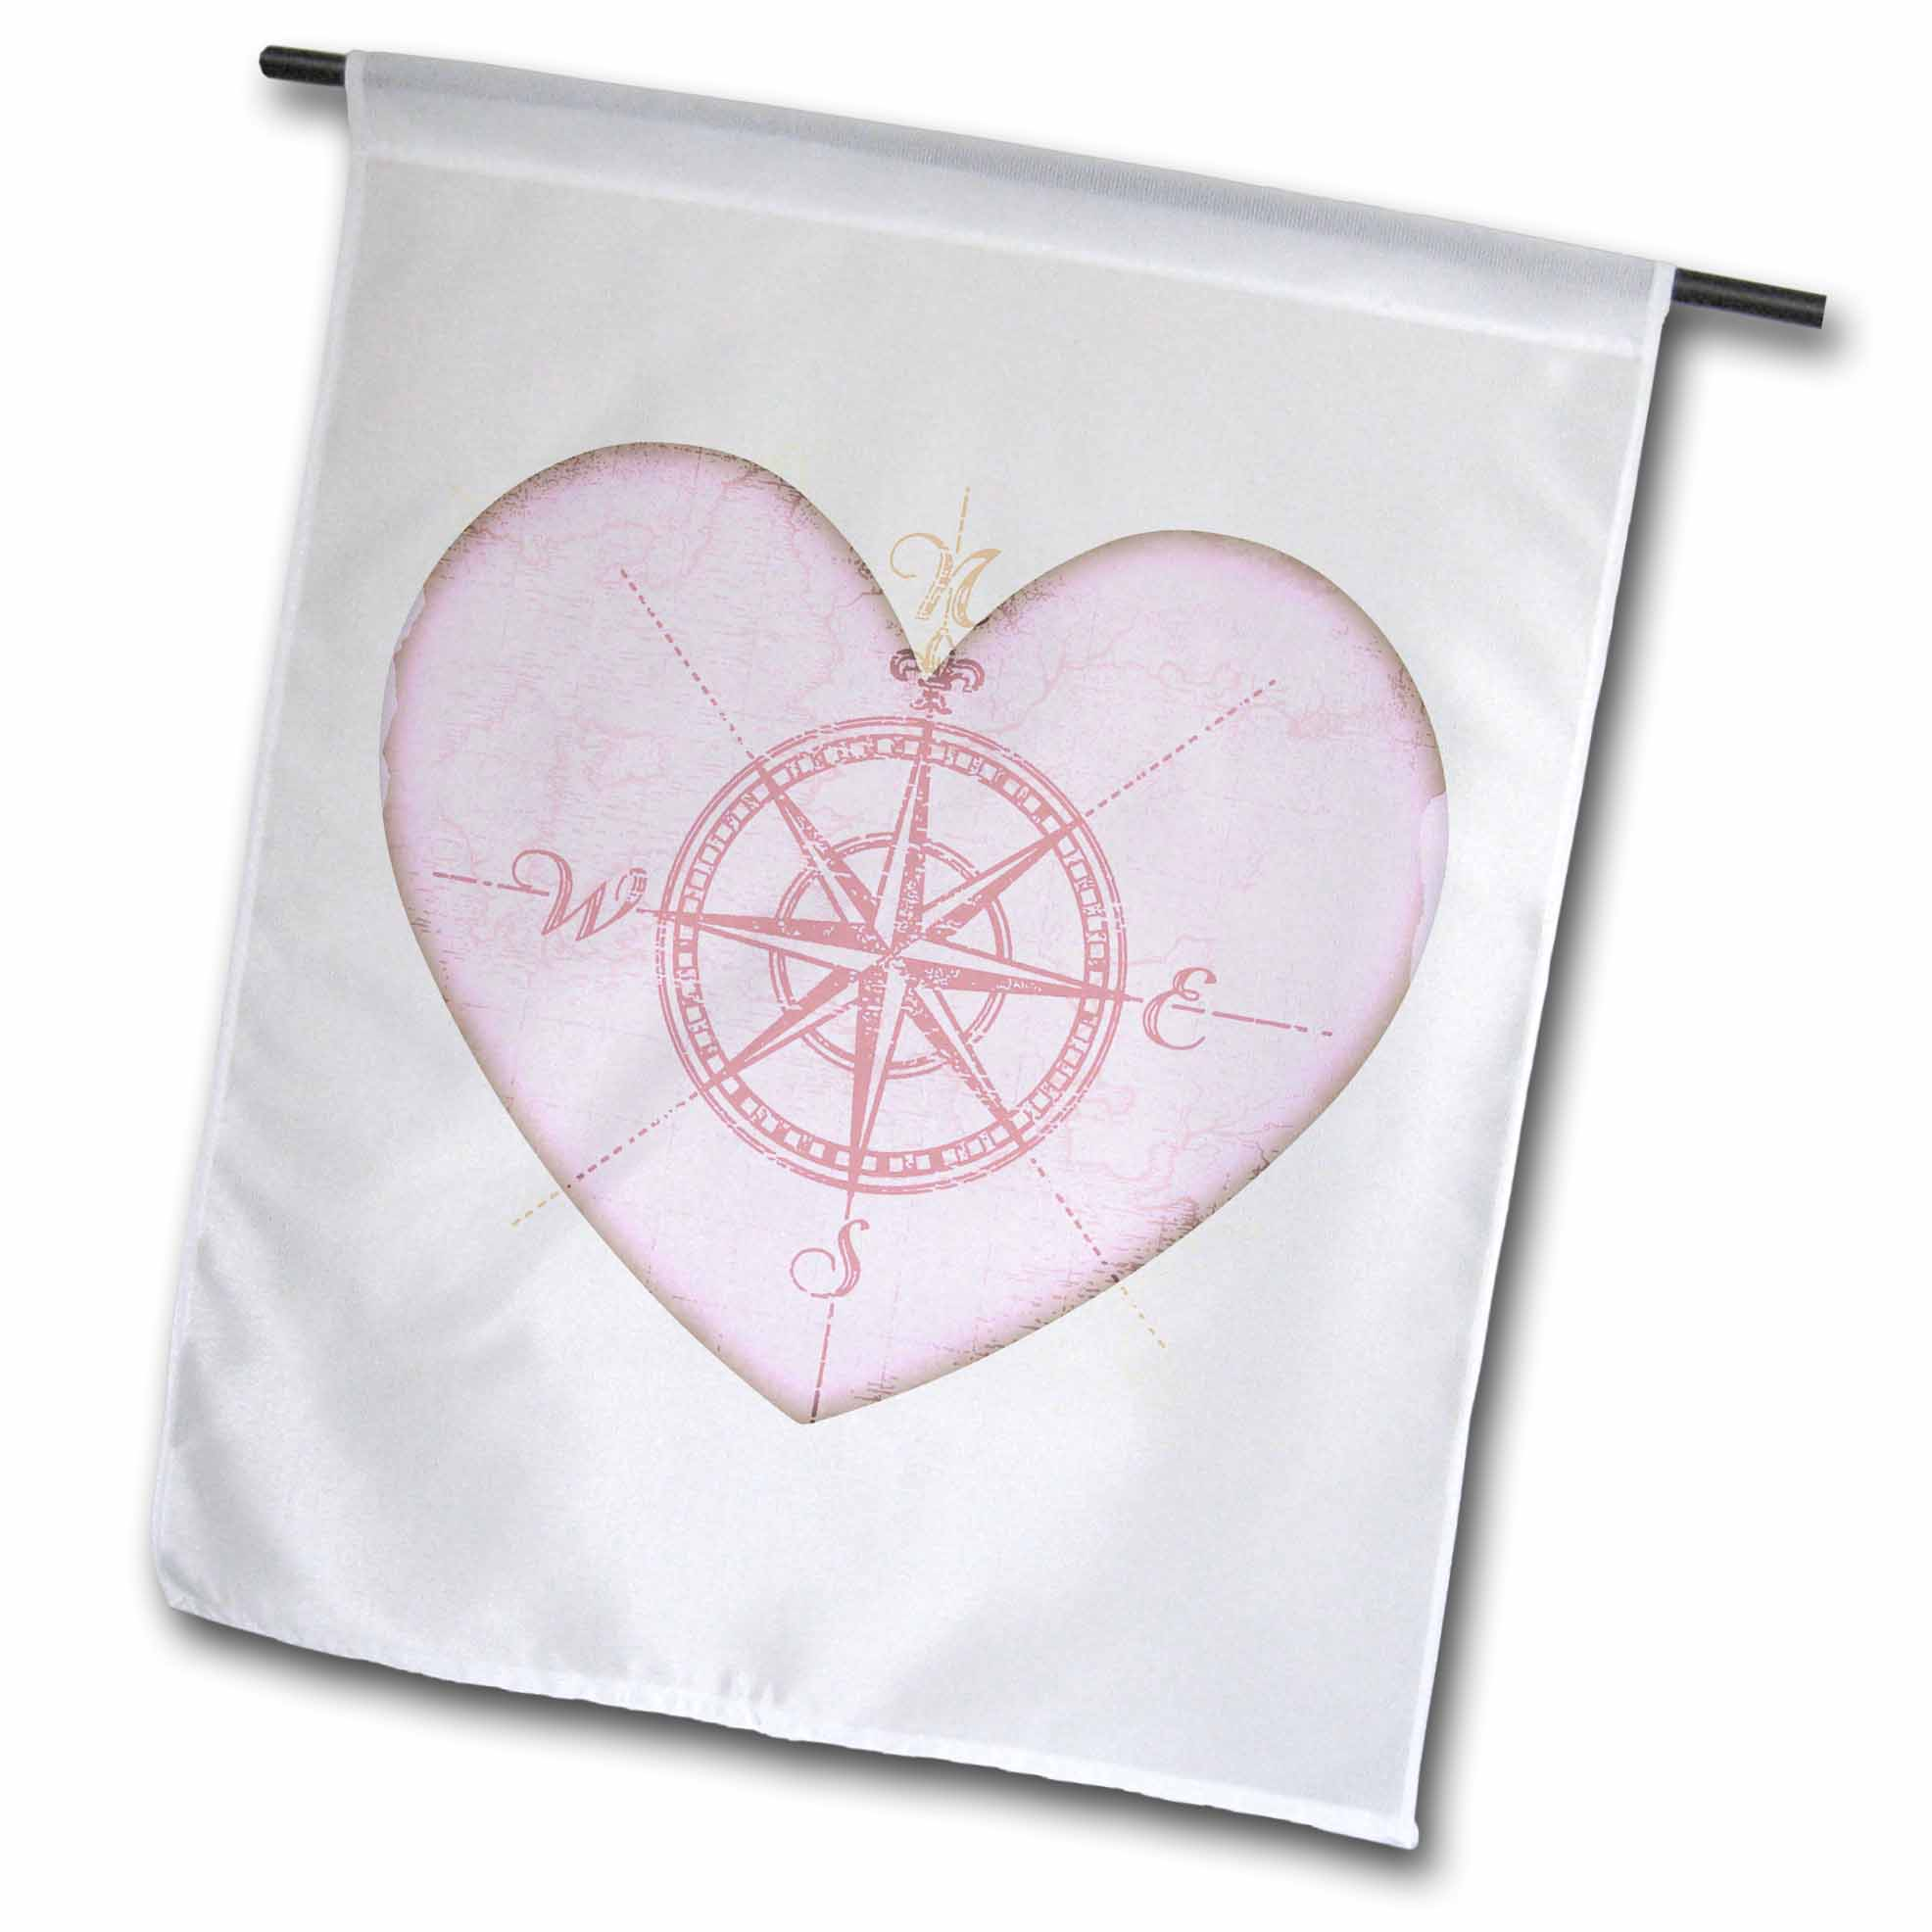 3dRose Heart Compass- Love Art- Romantic- Valentines Day, Garden Flag, 12 by 18-Inch